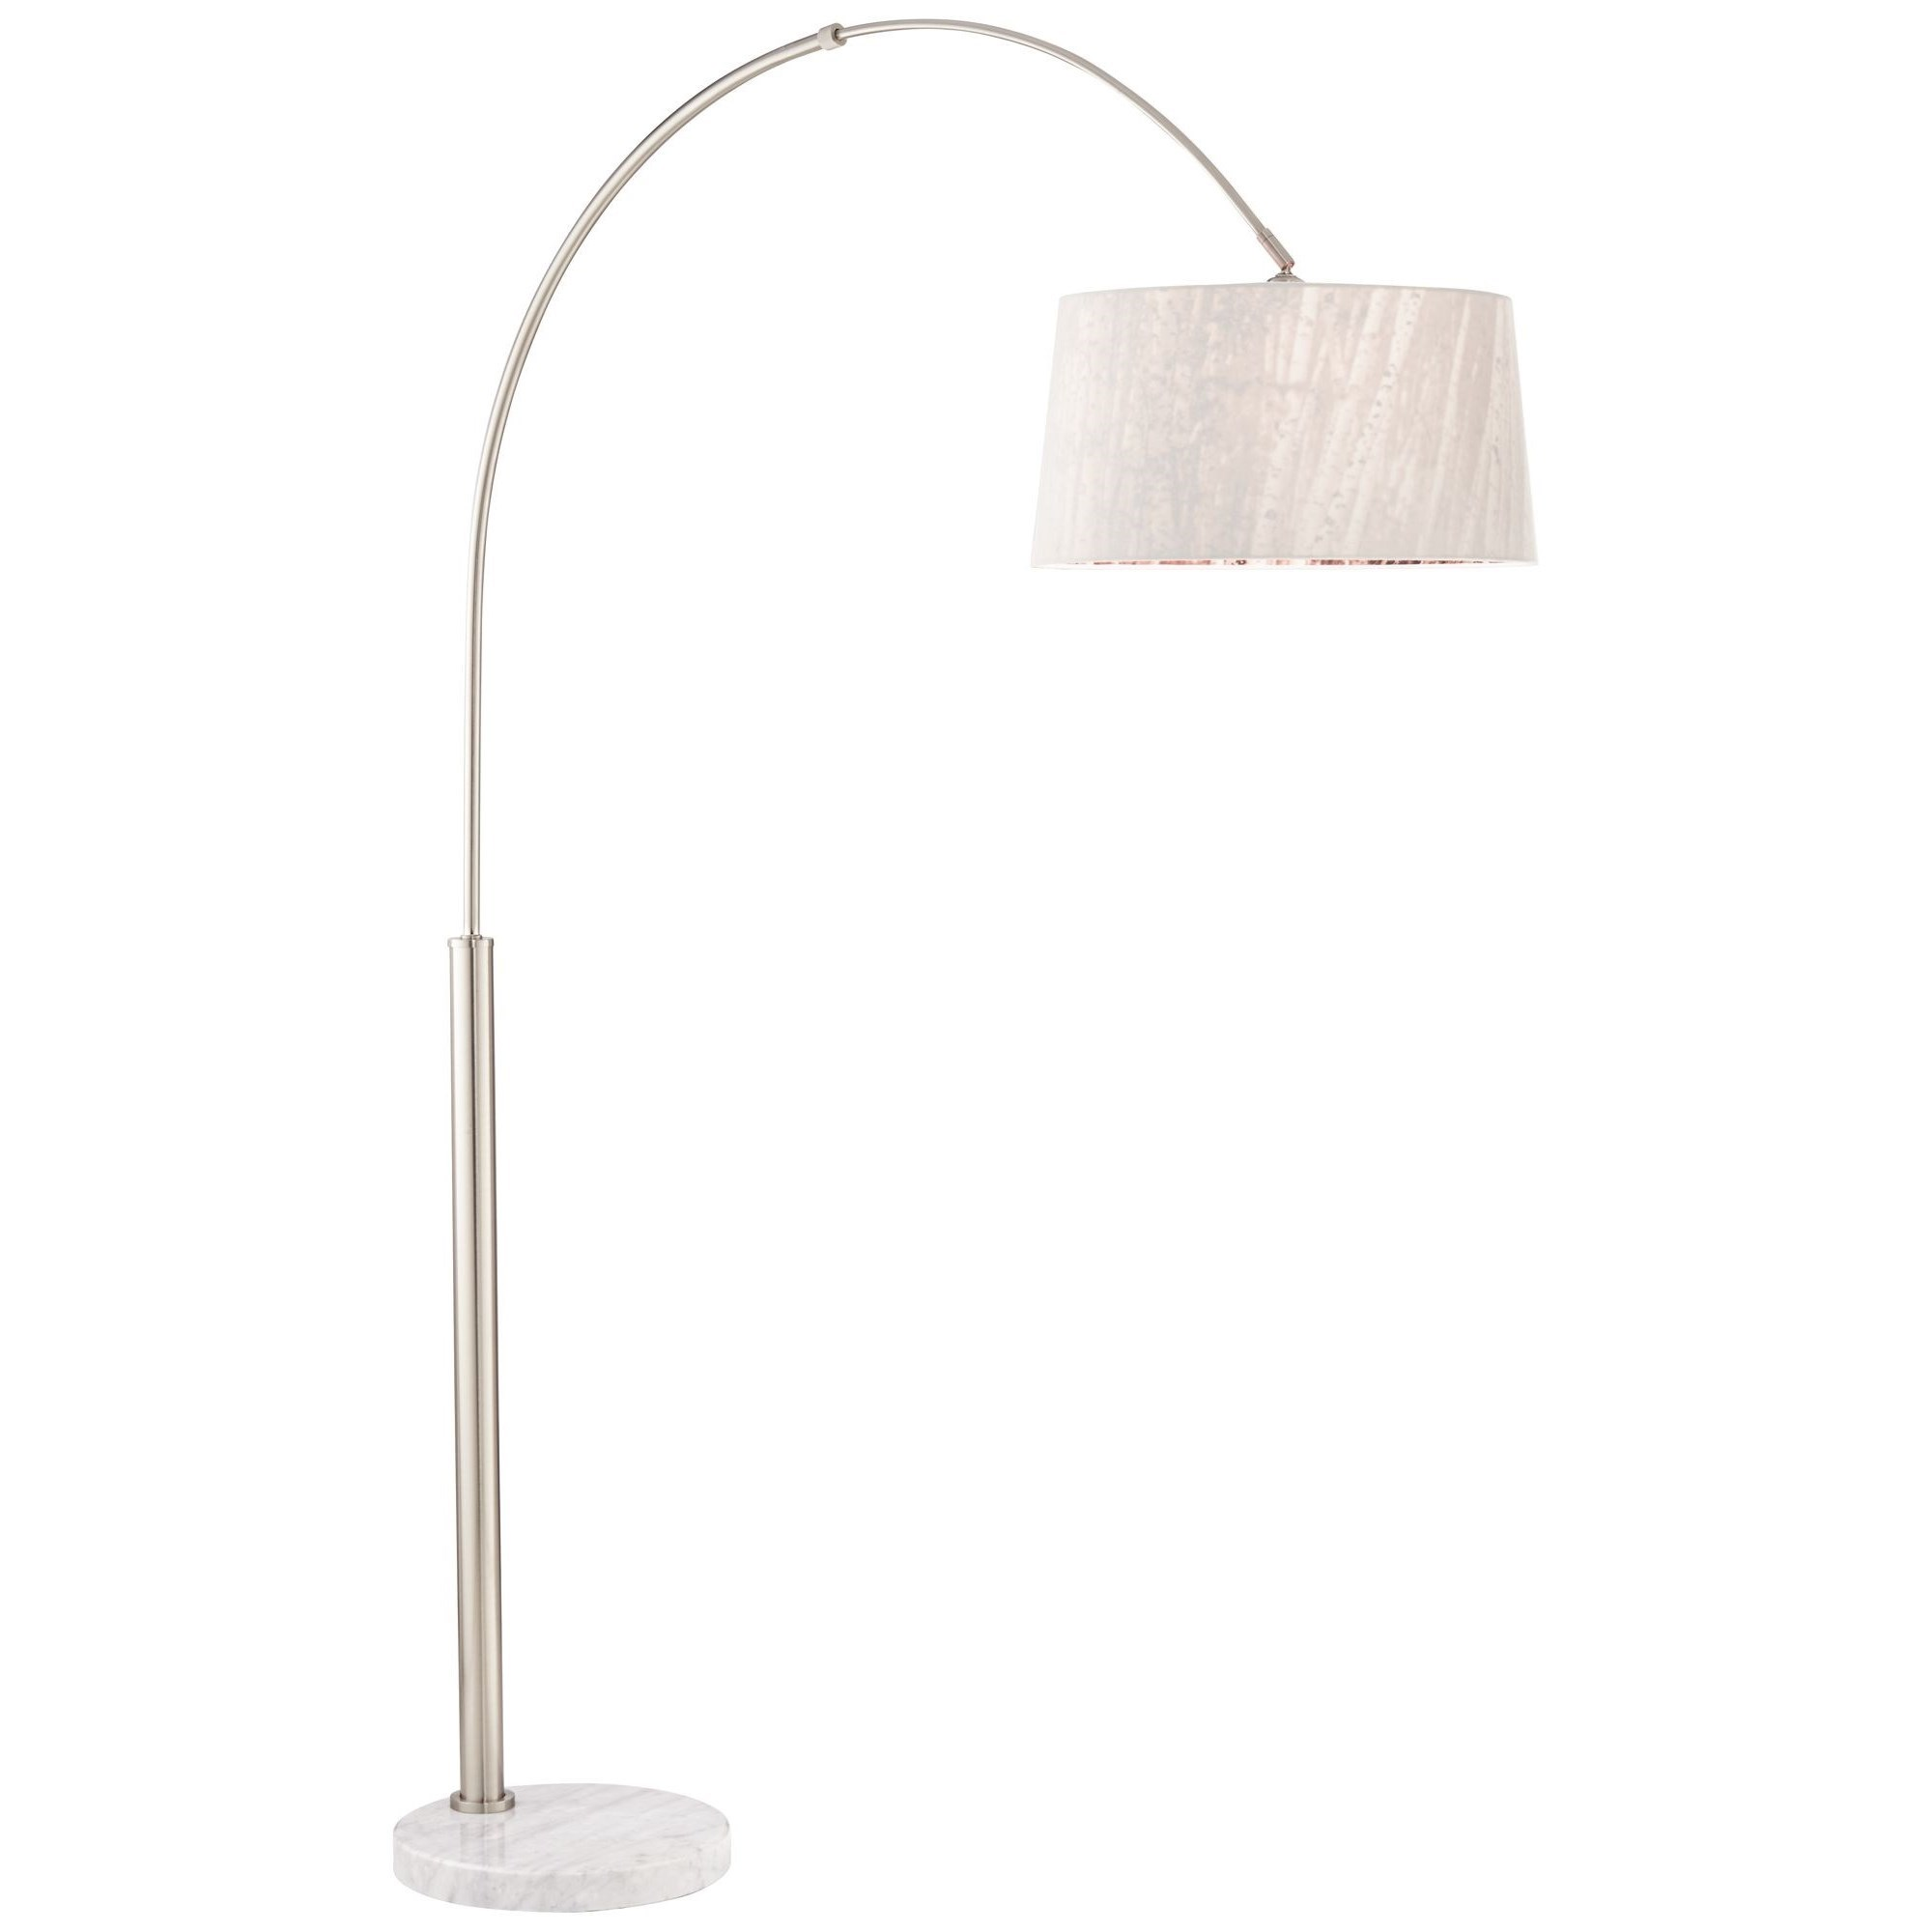 Floor Lamps Arc Nickel 9K606 W/Tree Shd 9K601 Floor Lamp by Pacific Coast Lighting at Furniture Superstore - Rochester, MN